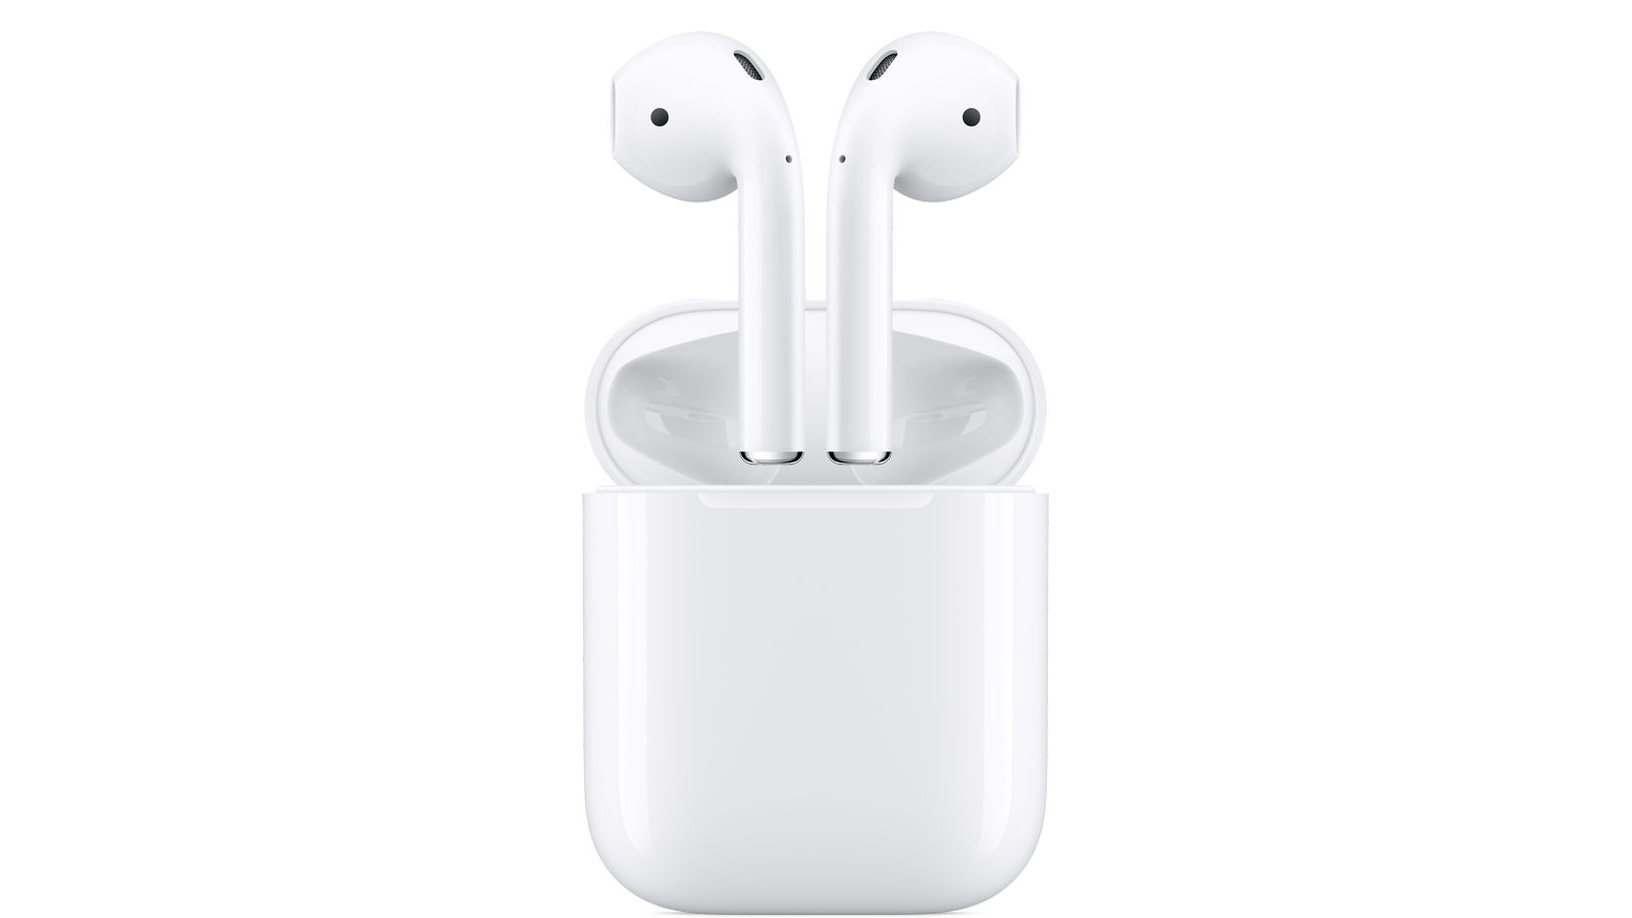 airpods 1 and 2 differences